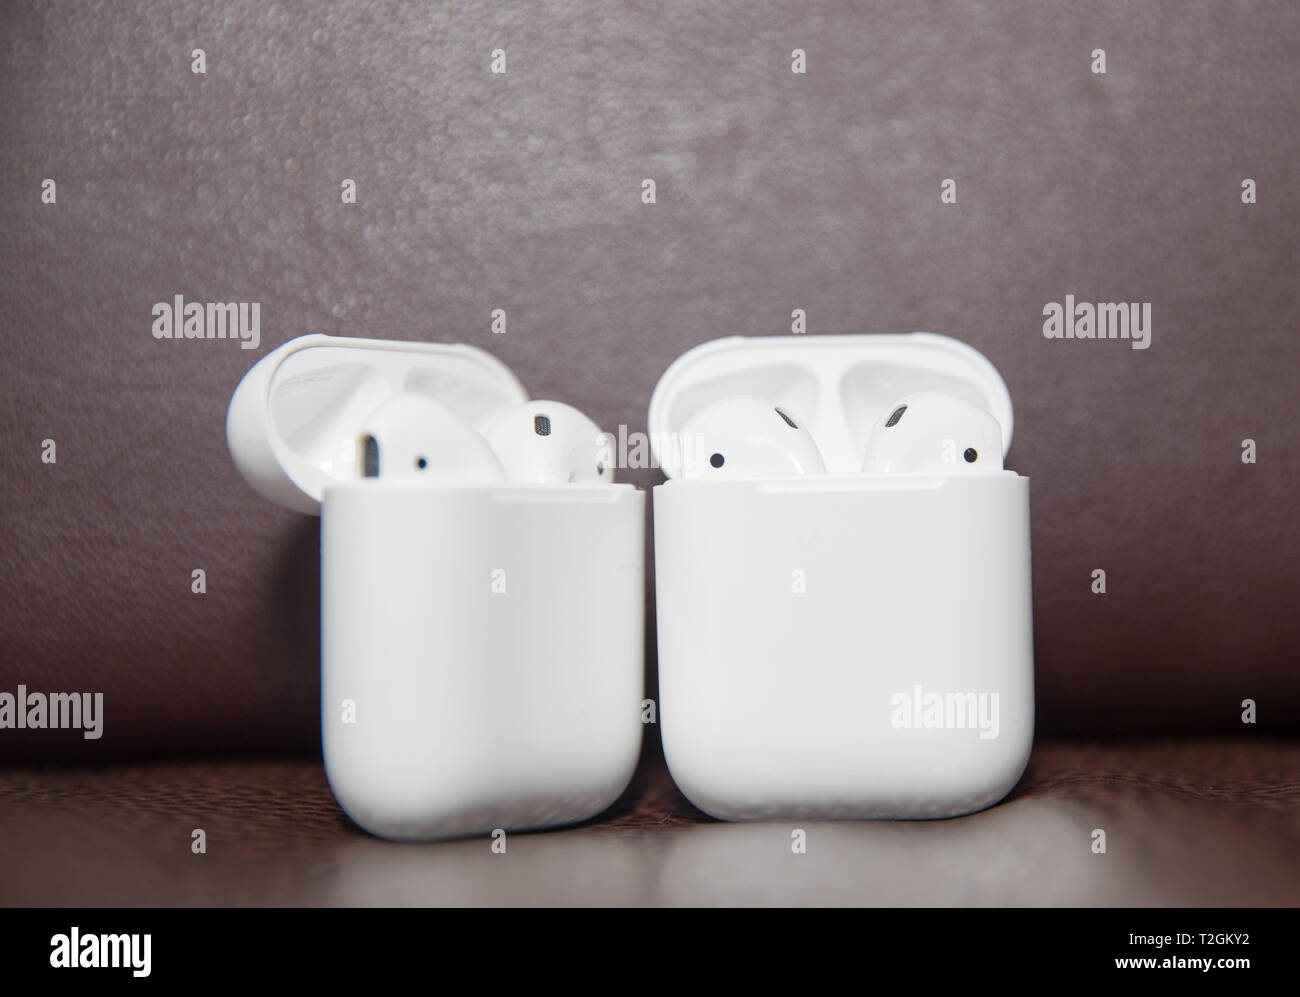 newest 58a32 18a2b Lawrence Township New Jersey, March 11, 2019:Apple AirPods wireless ...